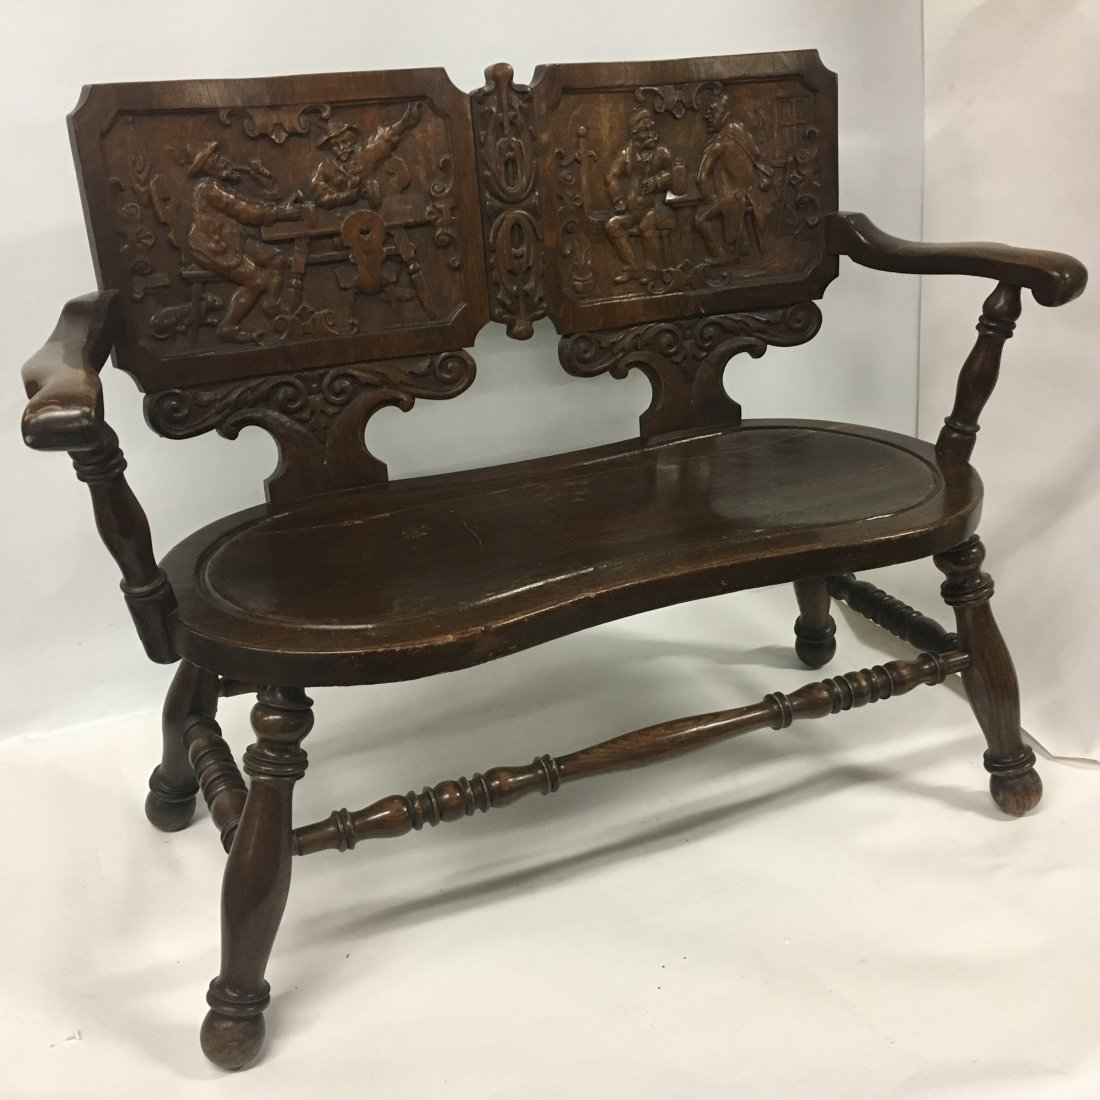 Figural carved Oak two person Decorative bench